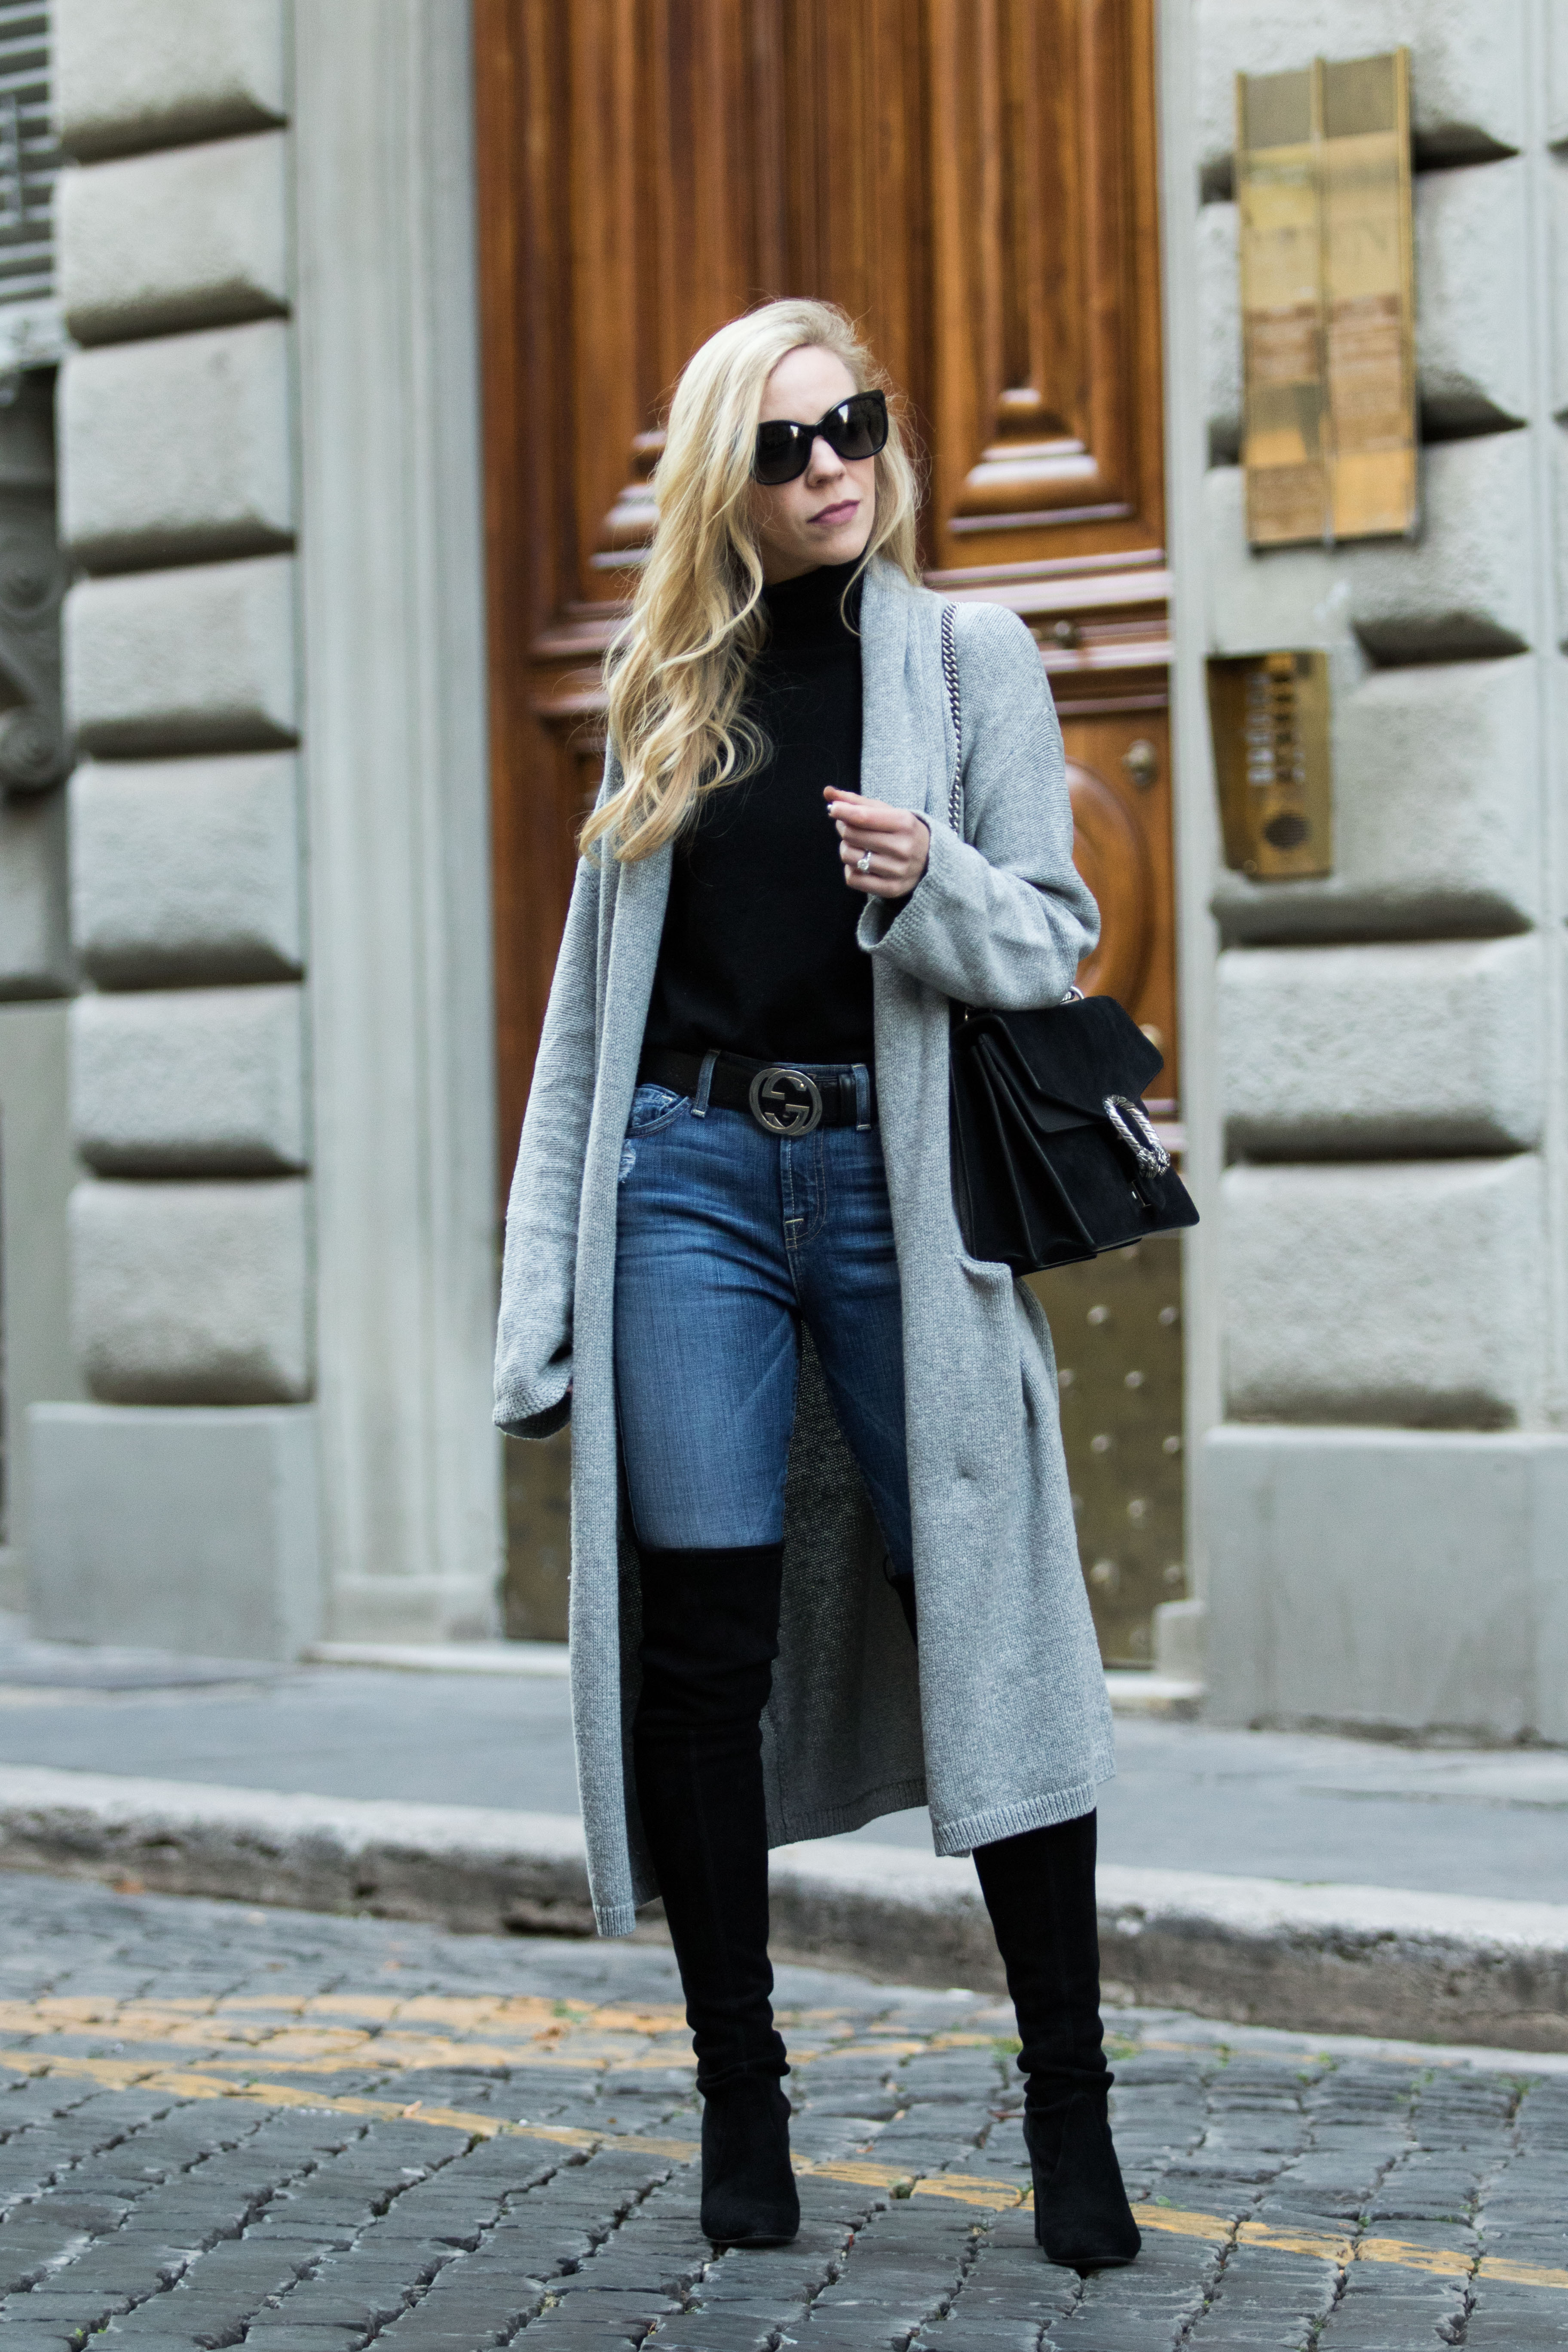 Rome Street Style Maxi Cardigan High Waist Jeans U0026 Over-the-Knee Boots - Meaganu0026#39;s Moda